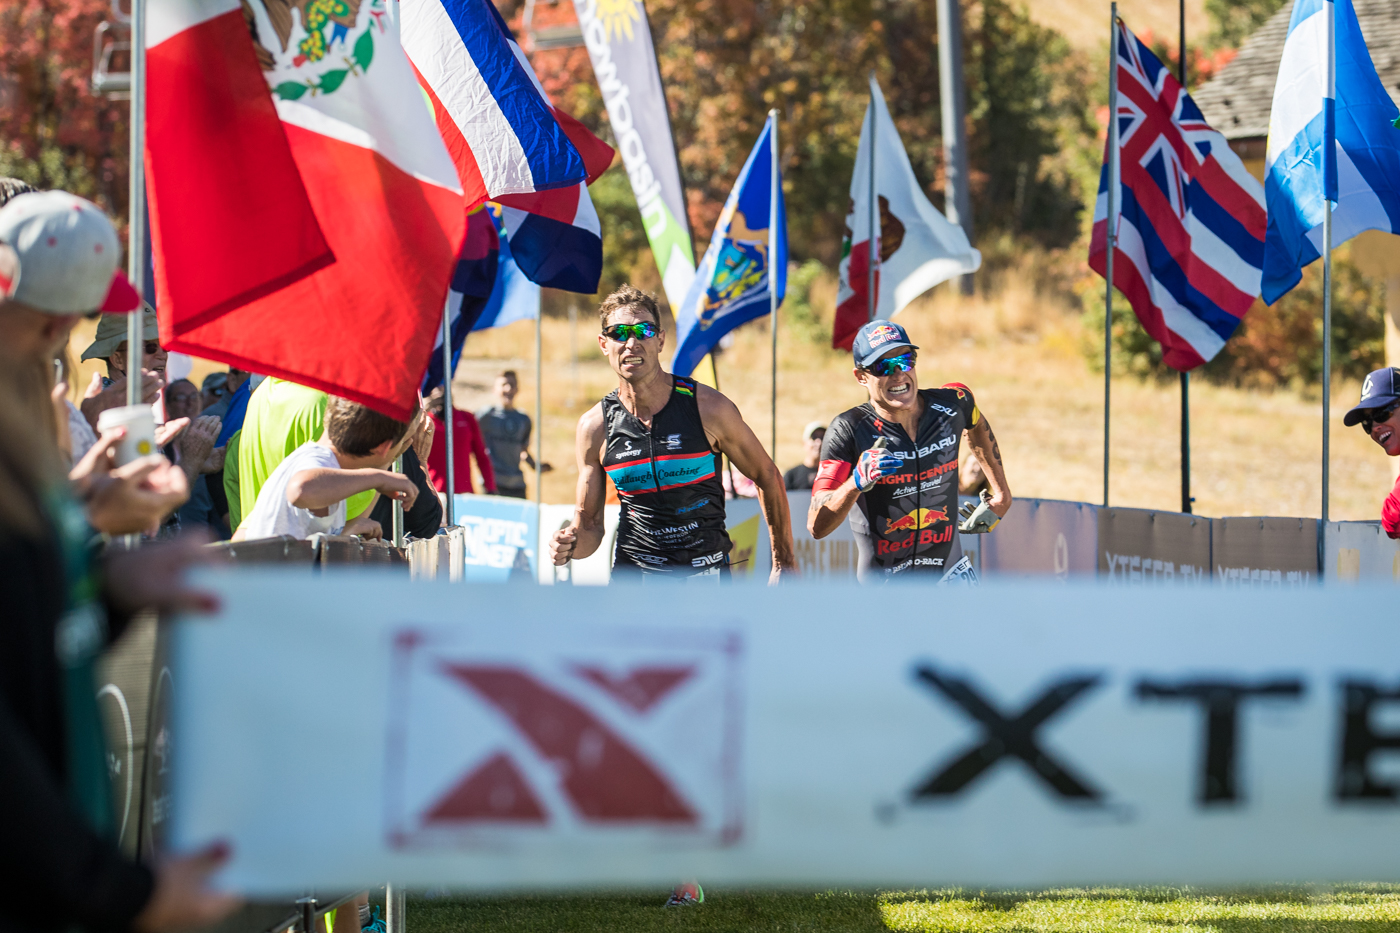 SLIDE FOR VICTORY IN XTERRA USA CHAMPS, CURRIE'S HARDEST-FOUGHT FINISH